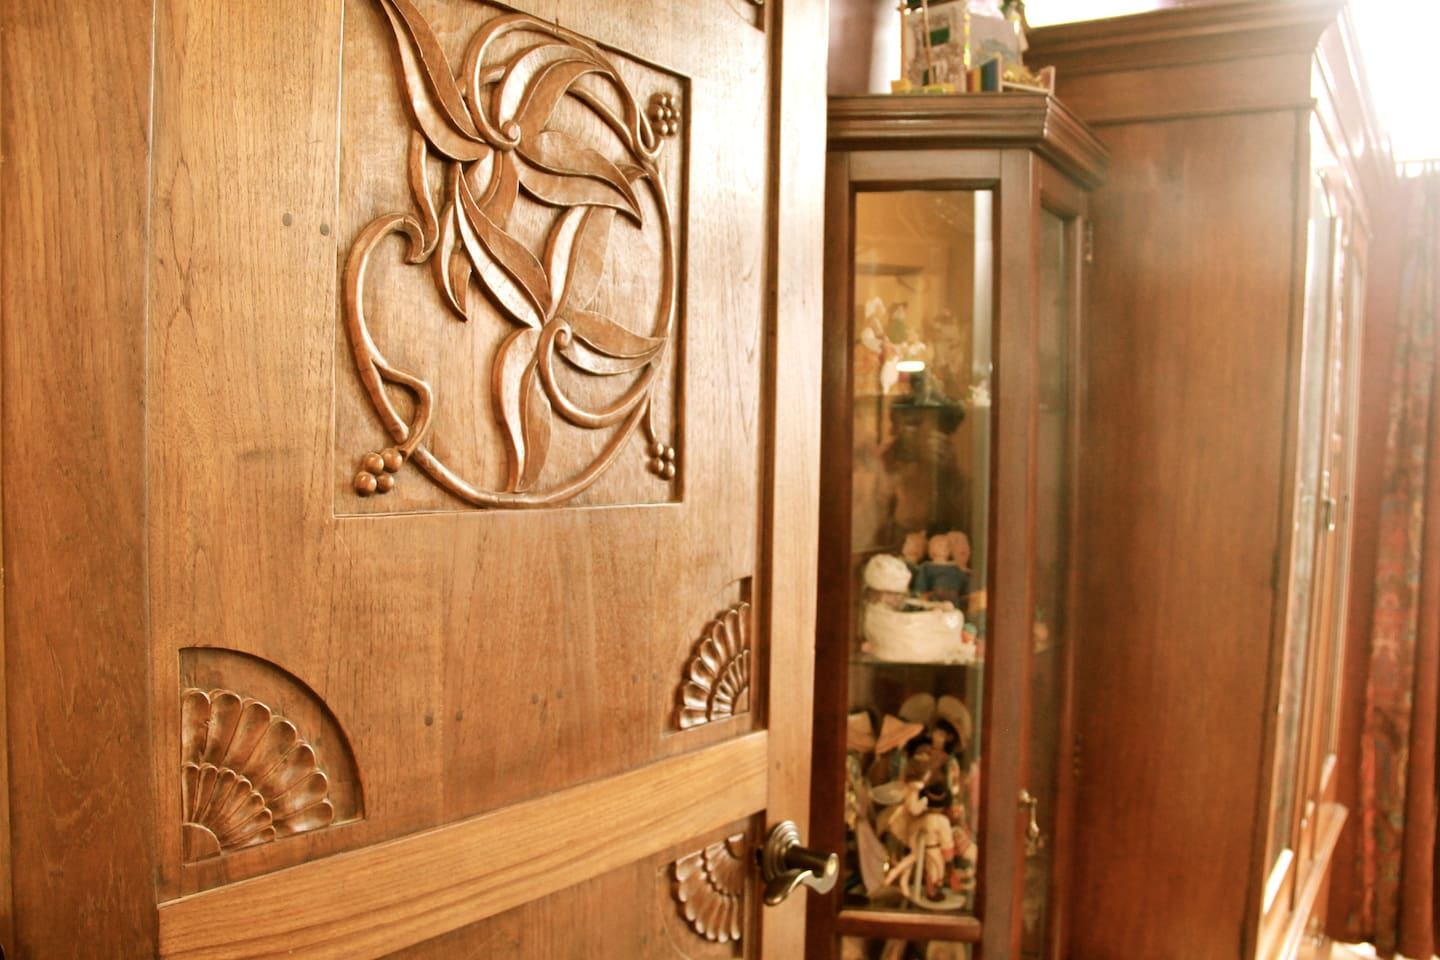 Carved wood door invites you into private bedroom